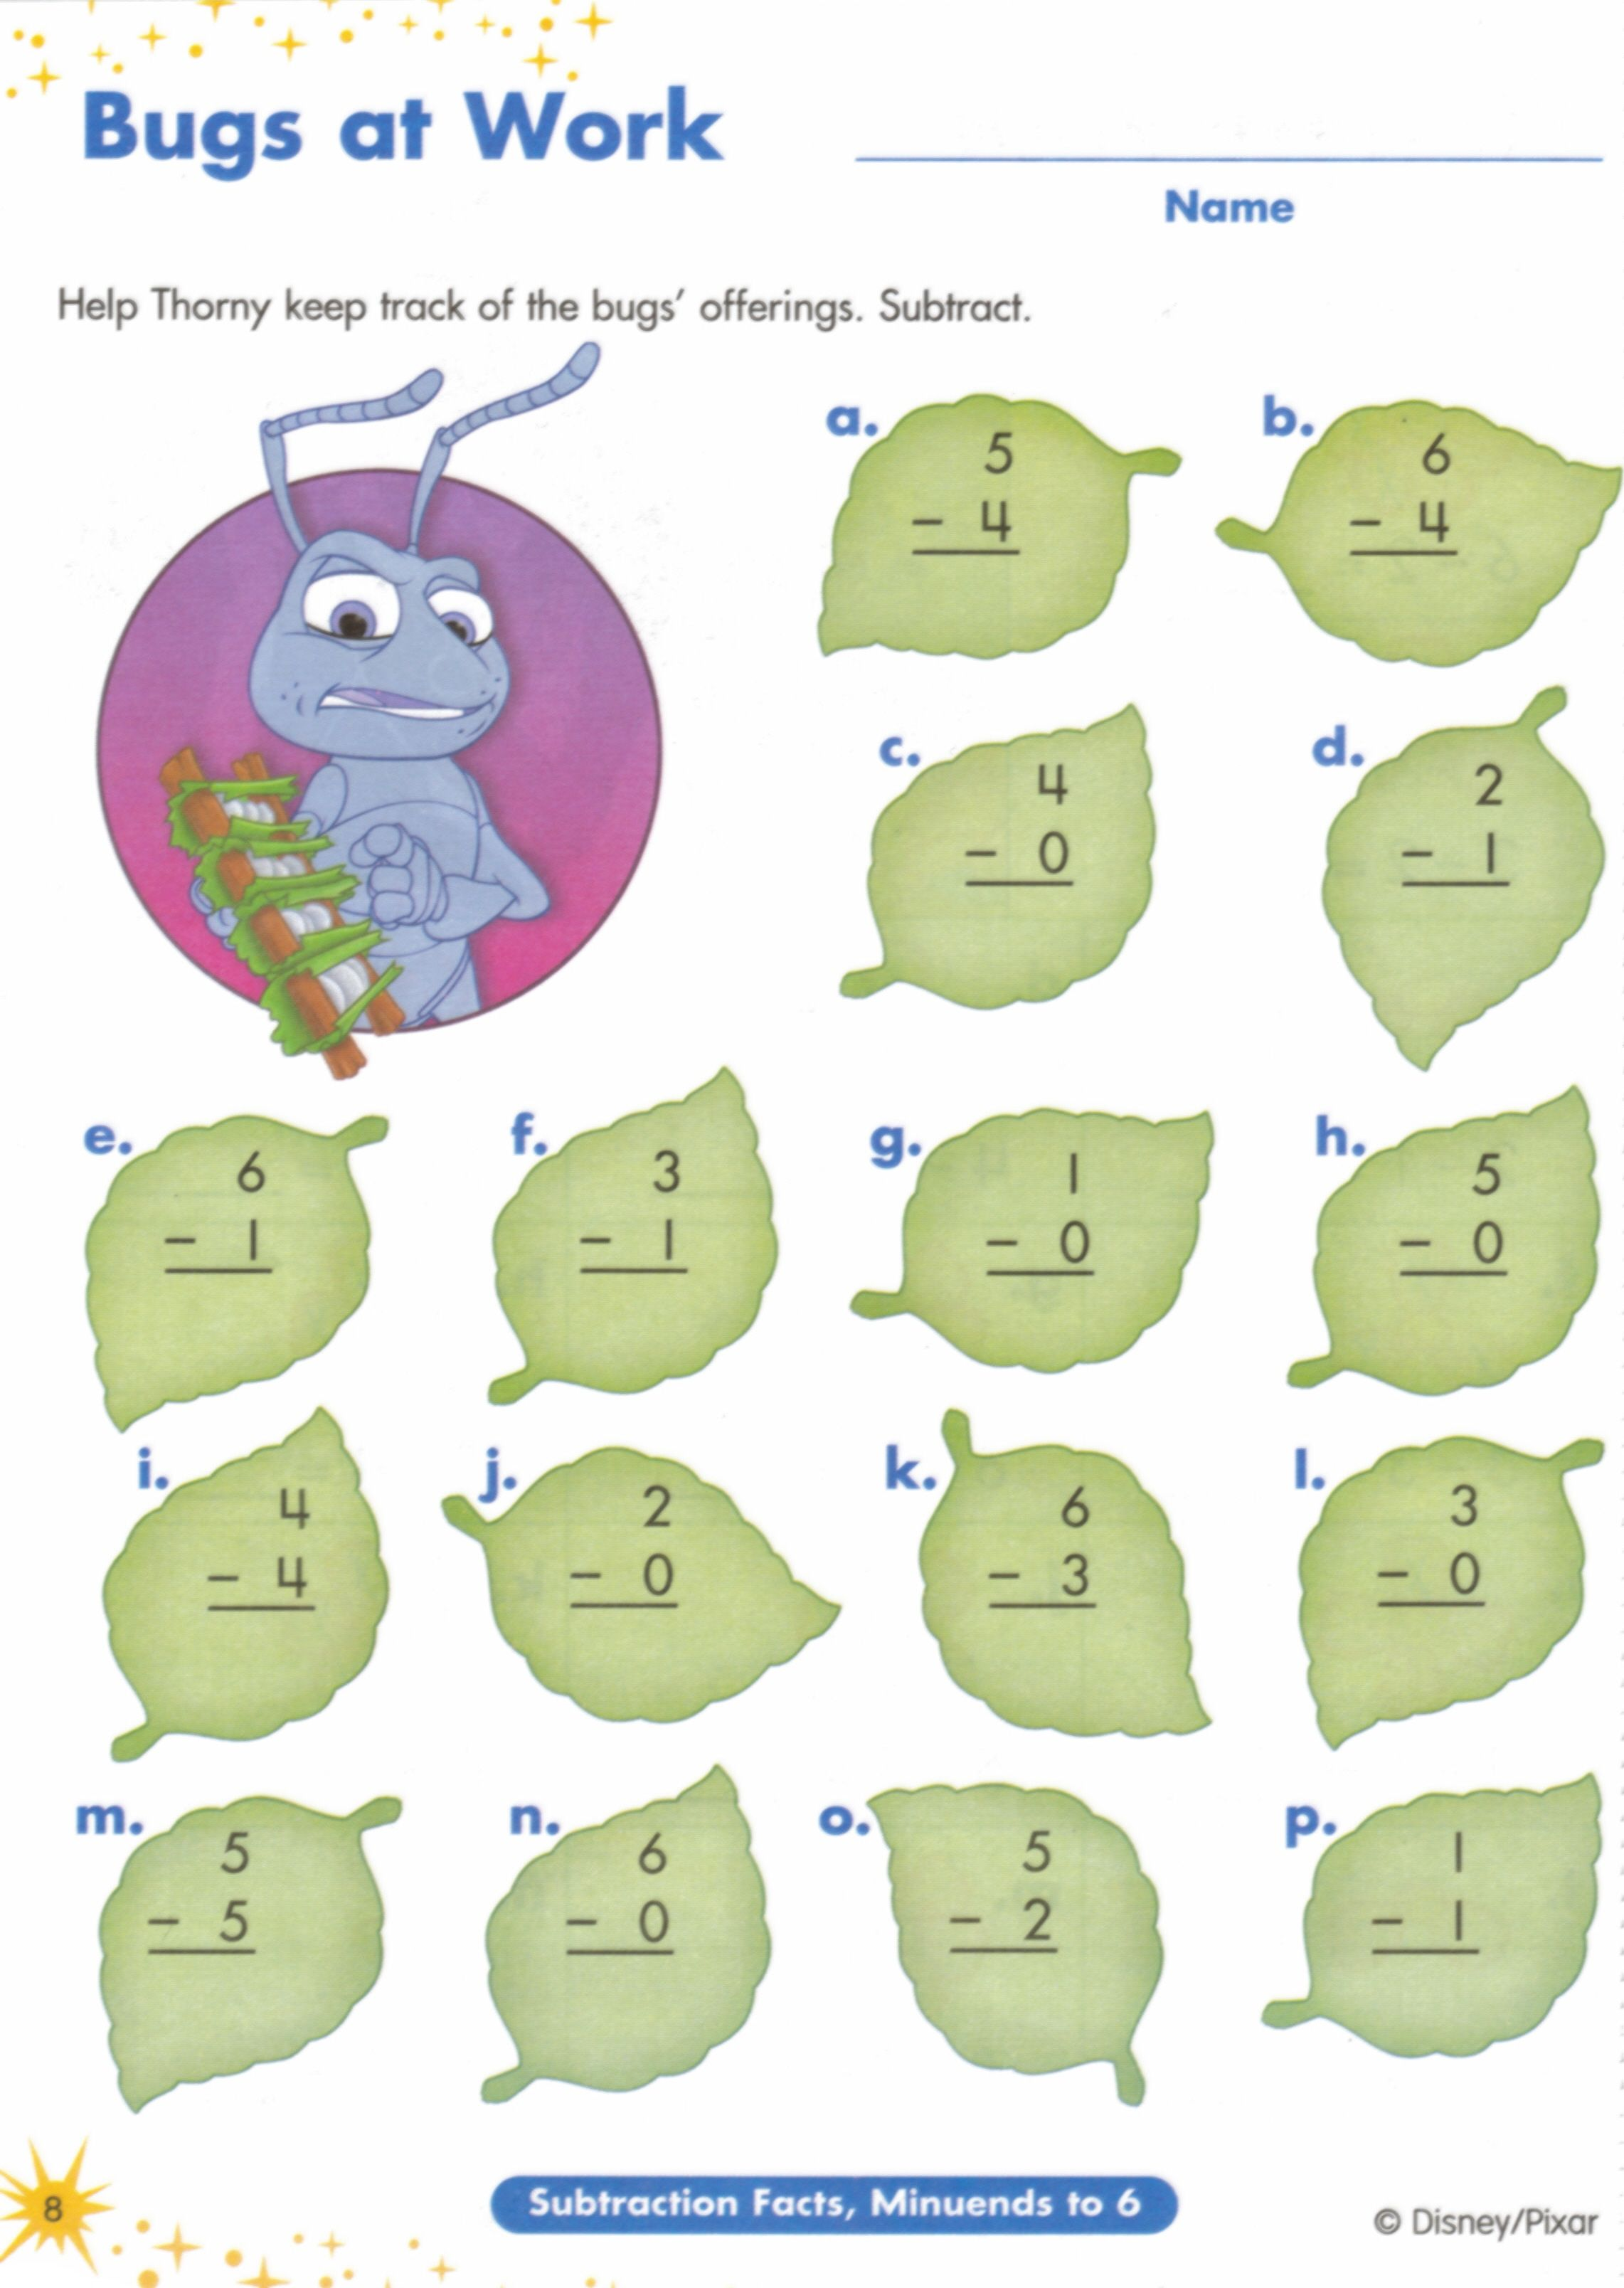 Proatmealus  Surprising  Images About Worksheets On Pinterest  Fun Facts For Kids  With Inspiring  Images About Worksheets On Pinterest  Fun Facts For Kids Earth Day Worksheets And Jungles With Endearing Short I Vowel Sound Worksheets Also Microbes Worksheet In Addition Multiplication By   And  Worksheet And Worksheet Works Hourly Planner As Well As Solar System Worksheet For Kids Additionally Free Printable Spelling Worksheet Generator From Pinterestcom With Proatmealus  Inspiring  Images About Worksheets On Pinterest  Fun Facts For Kids  With Endearing  Images About Worksheets On Pinterest  Fun Facts For Kids Earth Day Worksheets And Jungles And Surprising Short I Vowel Sound Worksheets Also Microbes Worksheet In Addition Multiplication By   And  Worksheet From Pinterestcom